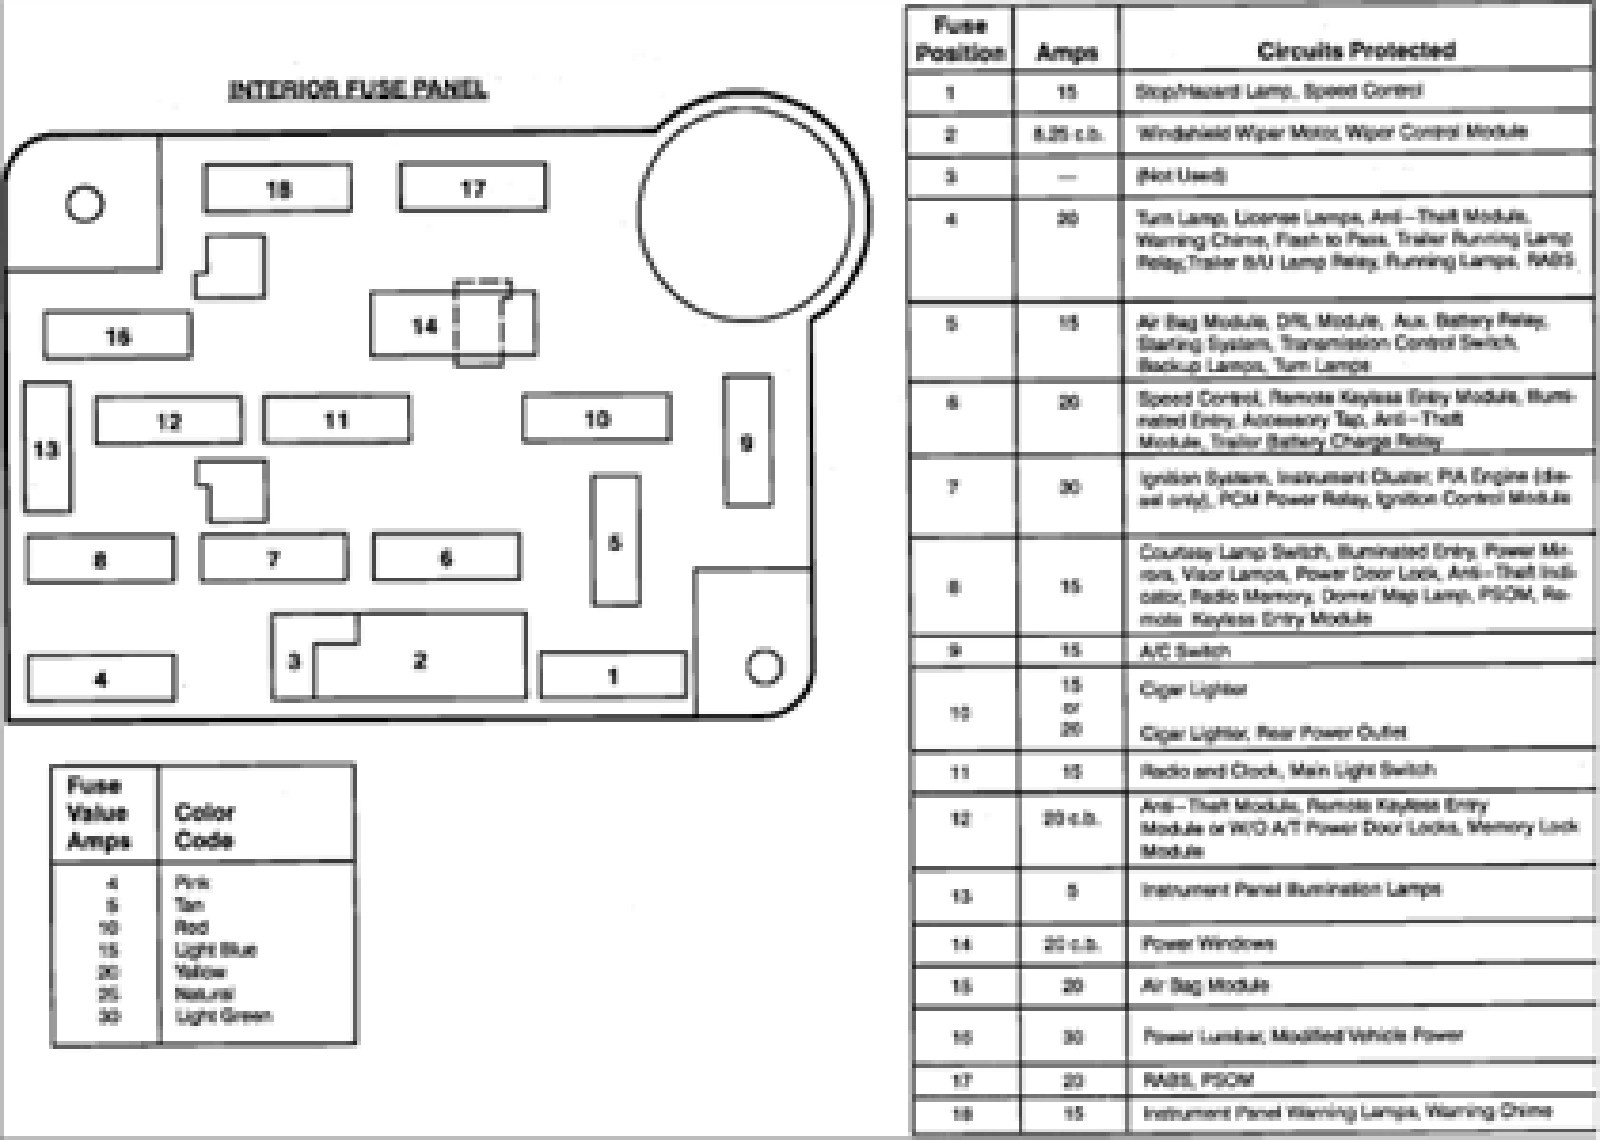 hight resolution of 97 econoline van fuse diagram wiring diagram 1989 f250 fuse box diagram source 03 crown victoria